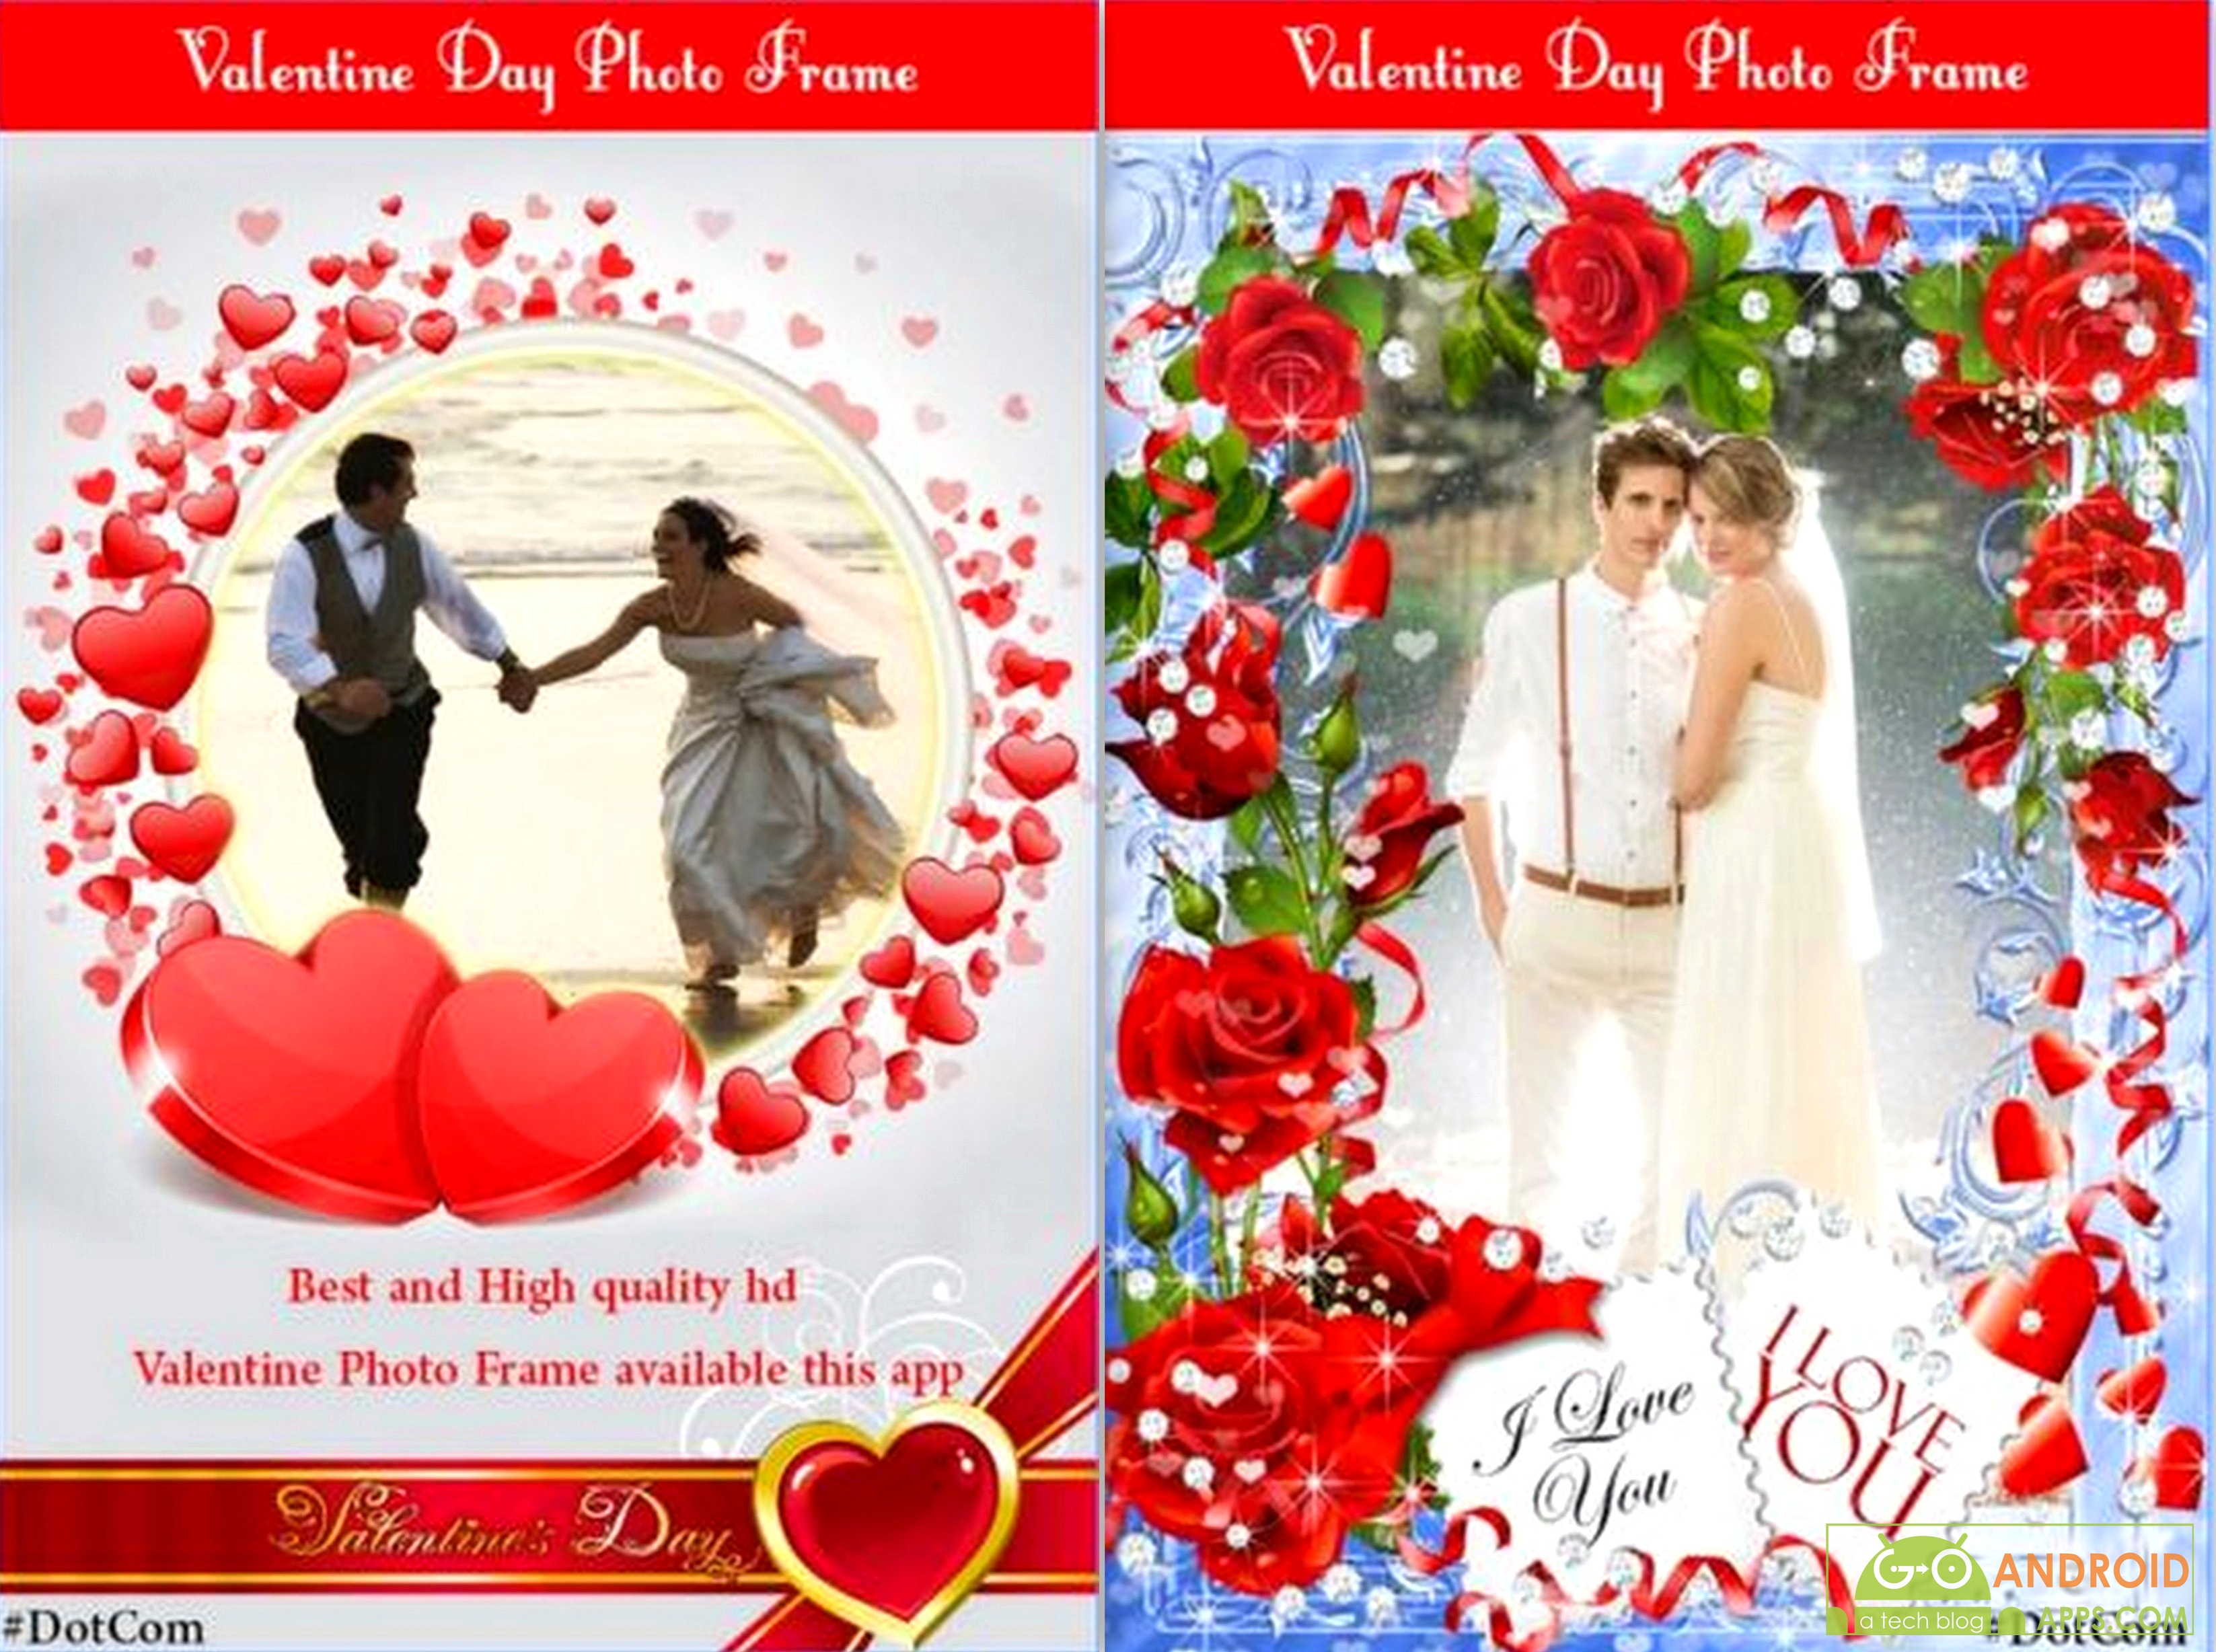 5 Best Valentines Day Photo Frames Apps - AppInformers.com